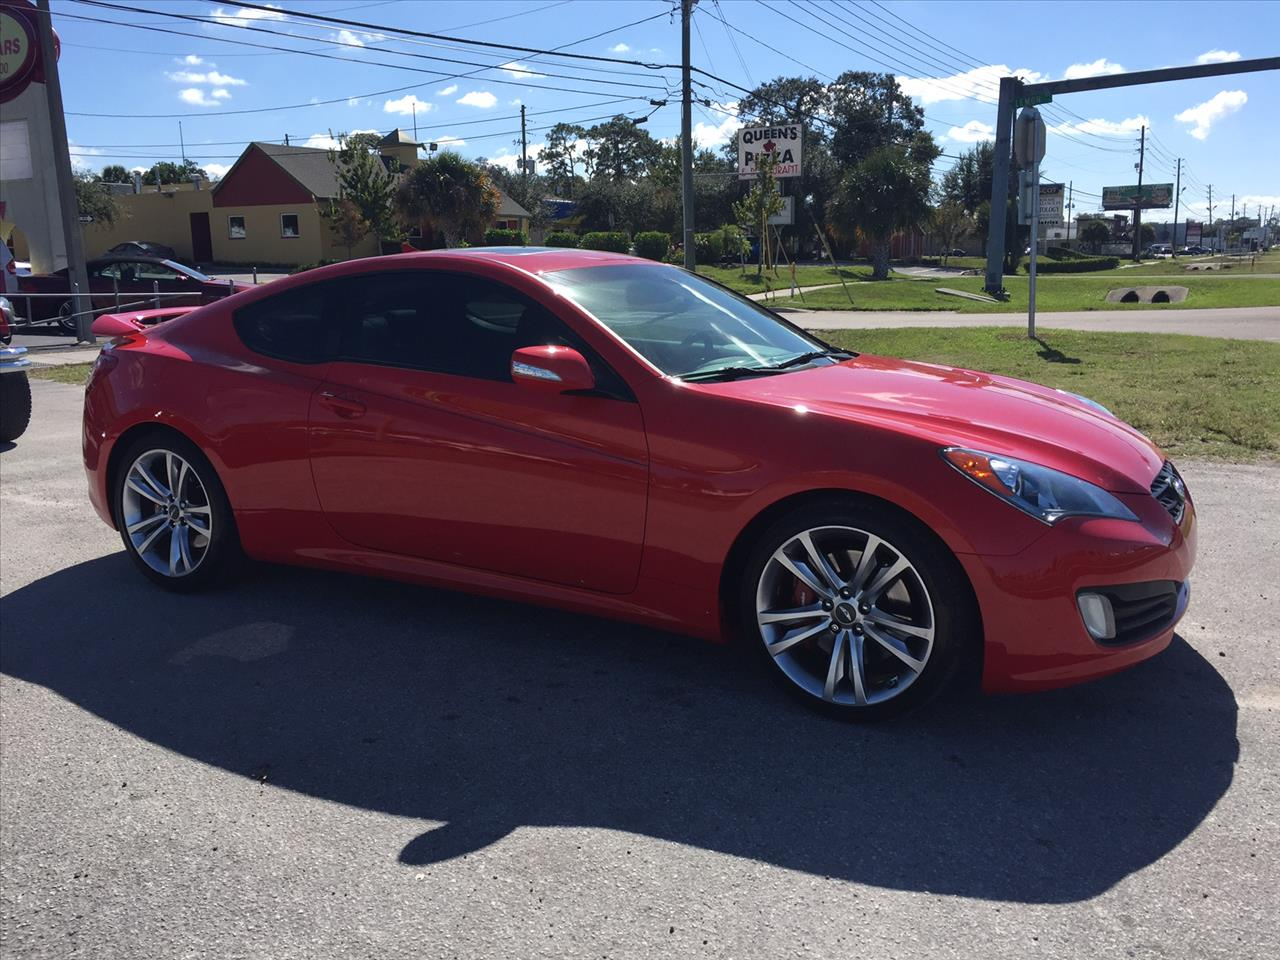 2012 hyundai genesis coupe for sale in hickory nc. Black Bedroom Furniture Sets. Home Design Ideas